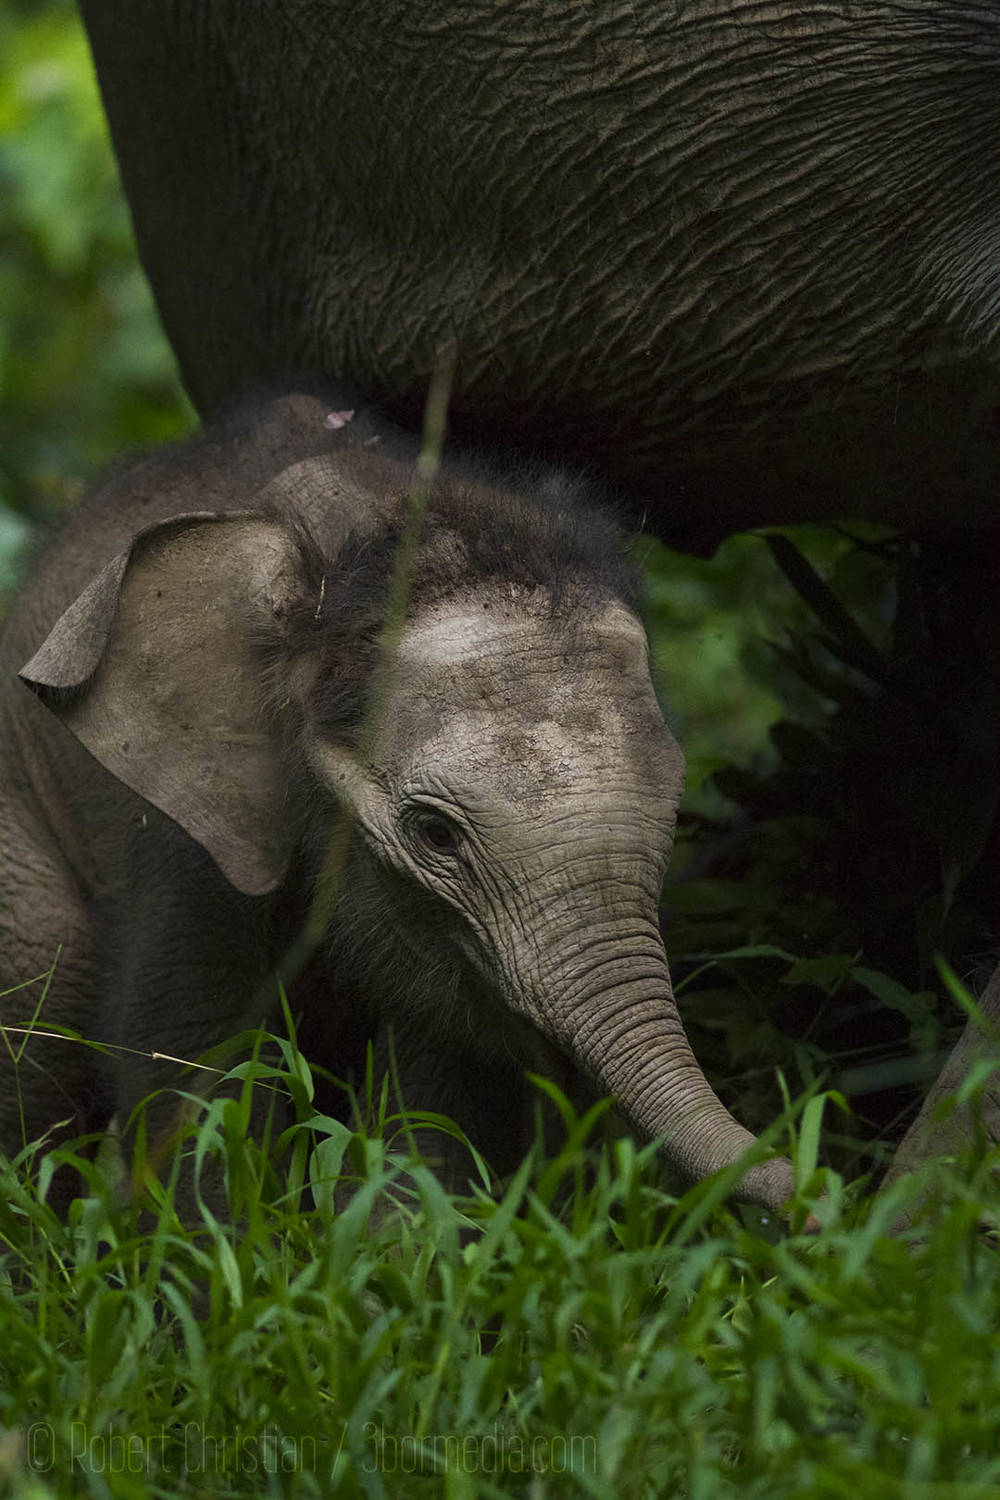 A baby elephant with its mother.